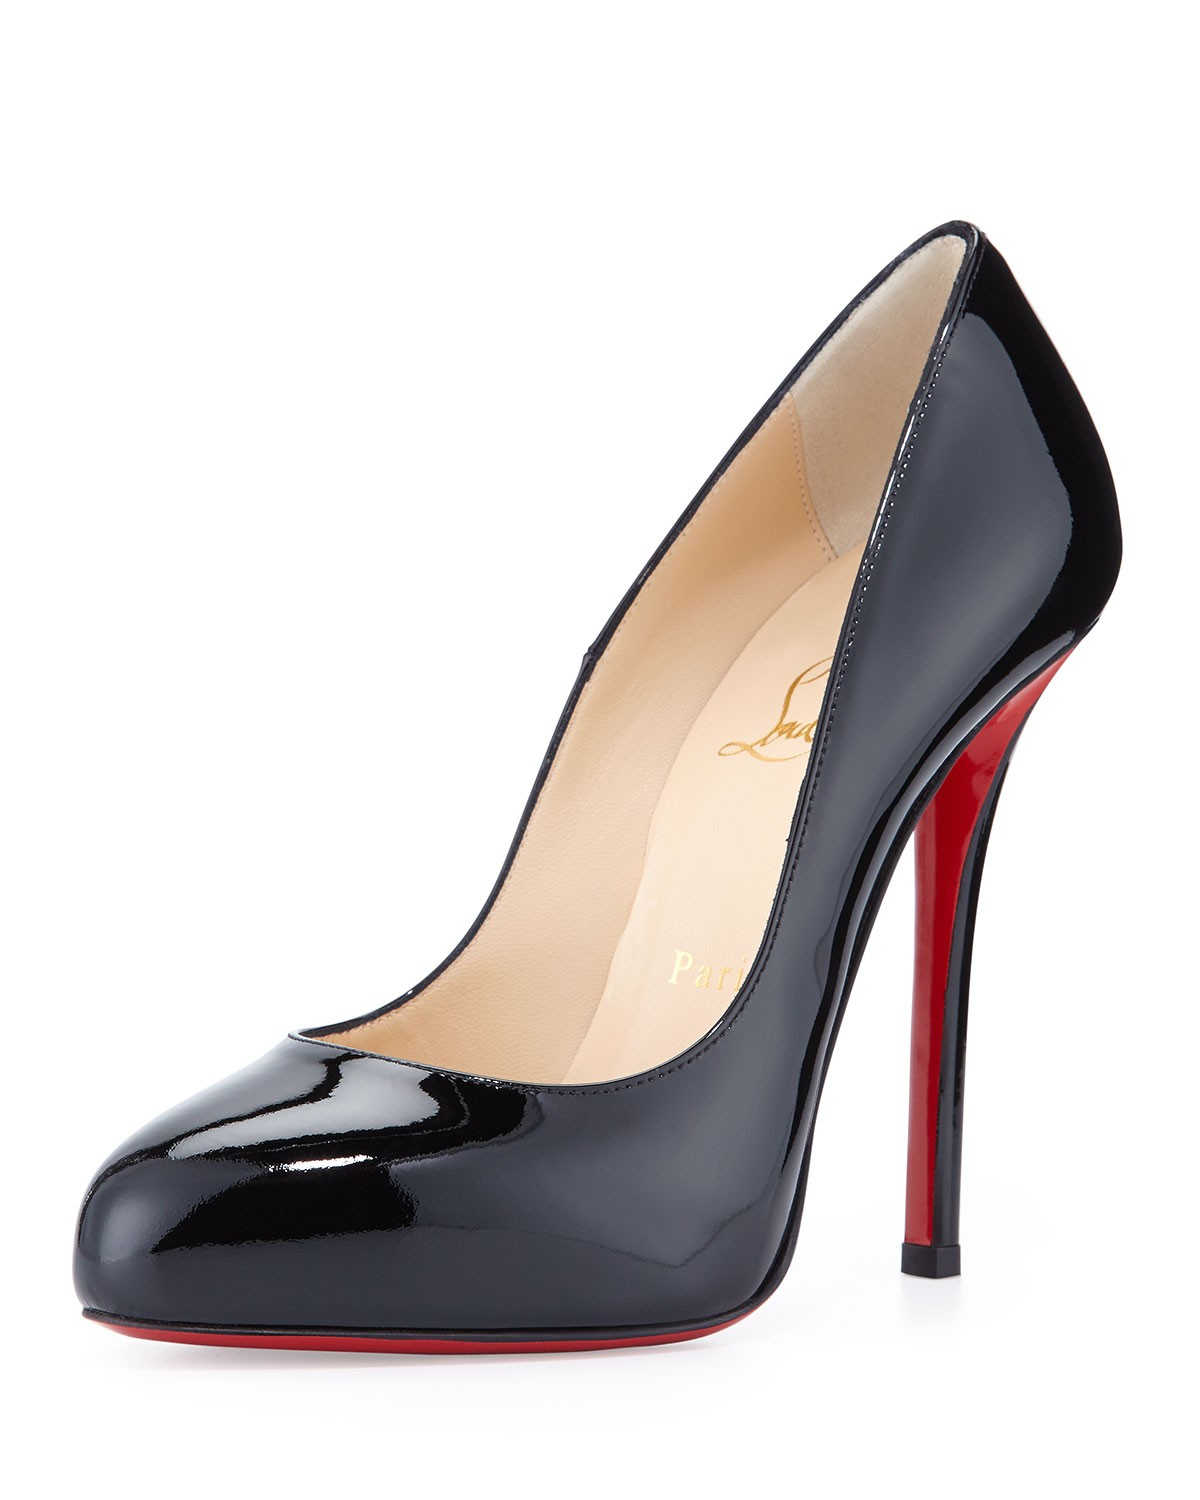 Argotik Patent Red Sole Pump, Black - Christian Louboutin - Black (35.0B/5.0B)